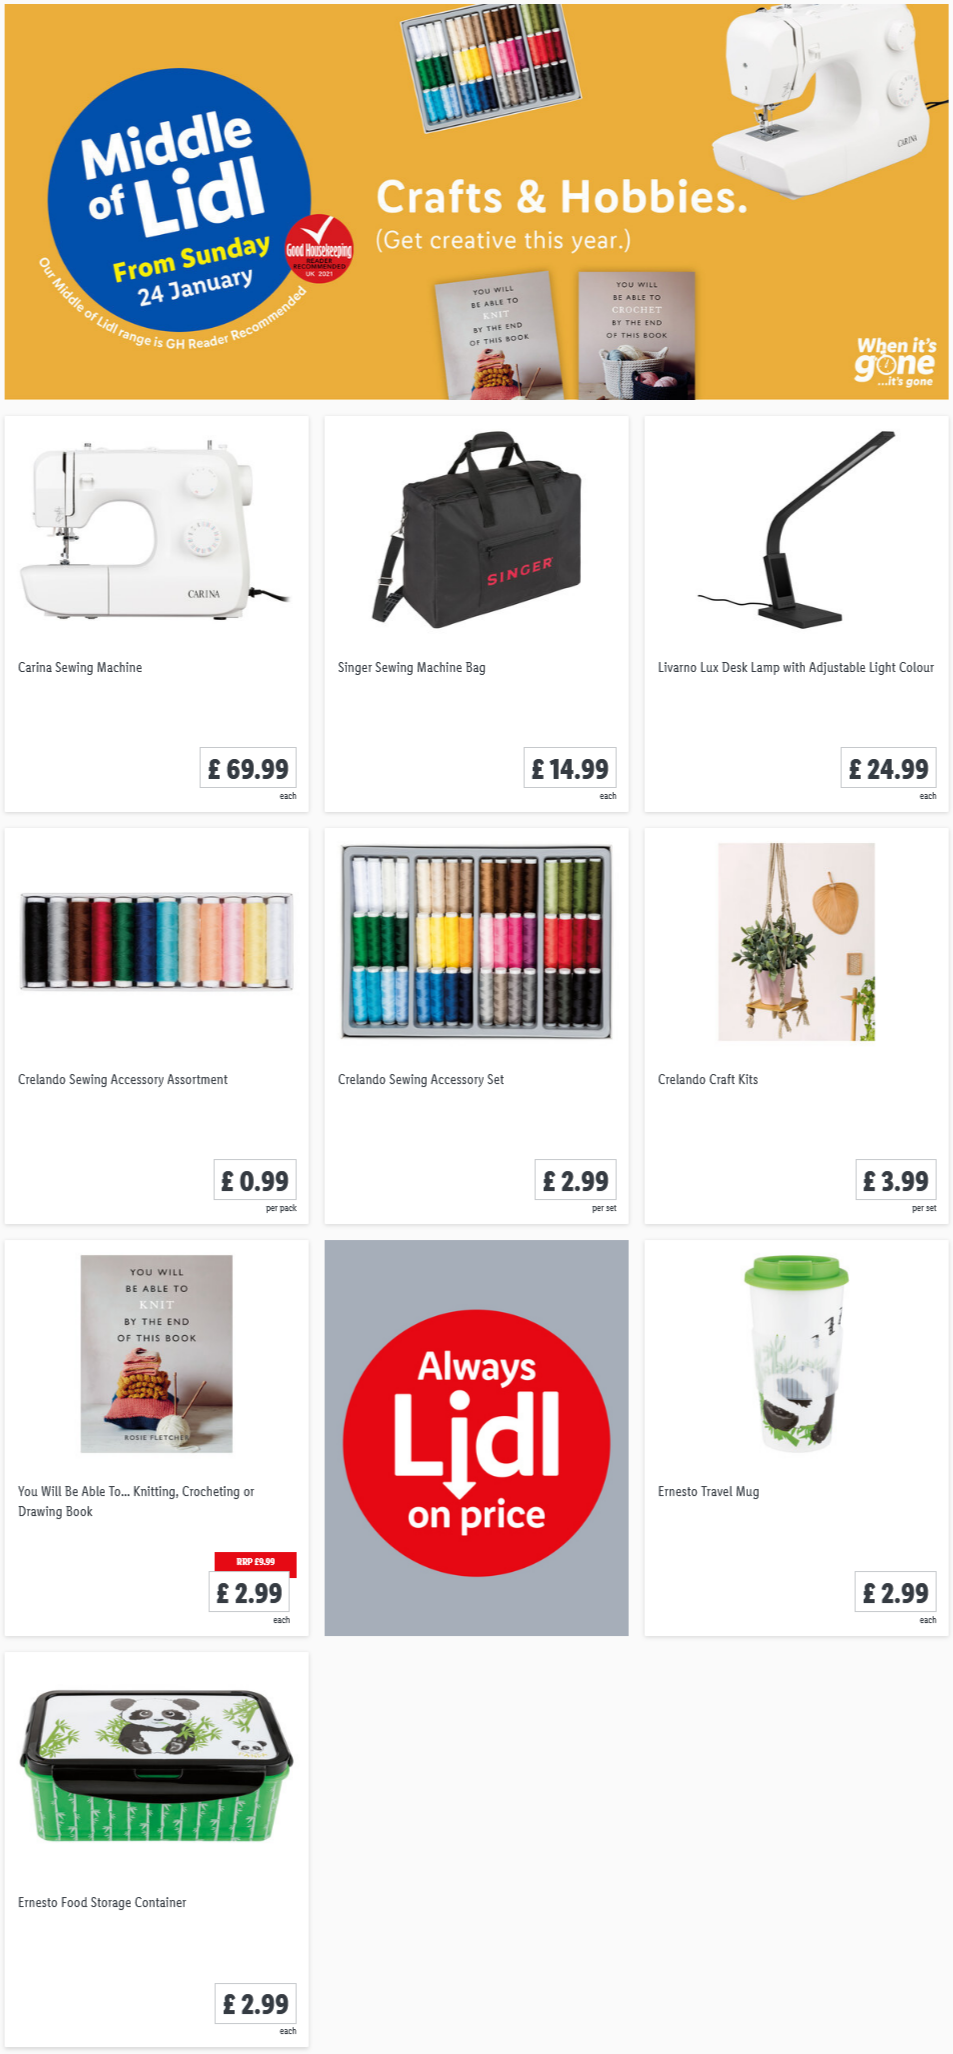 LIDL Sunday Offers Crafts & Hobbies from 24th January 2021